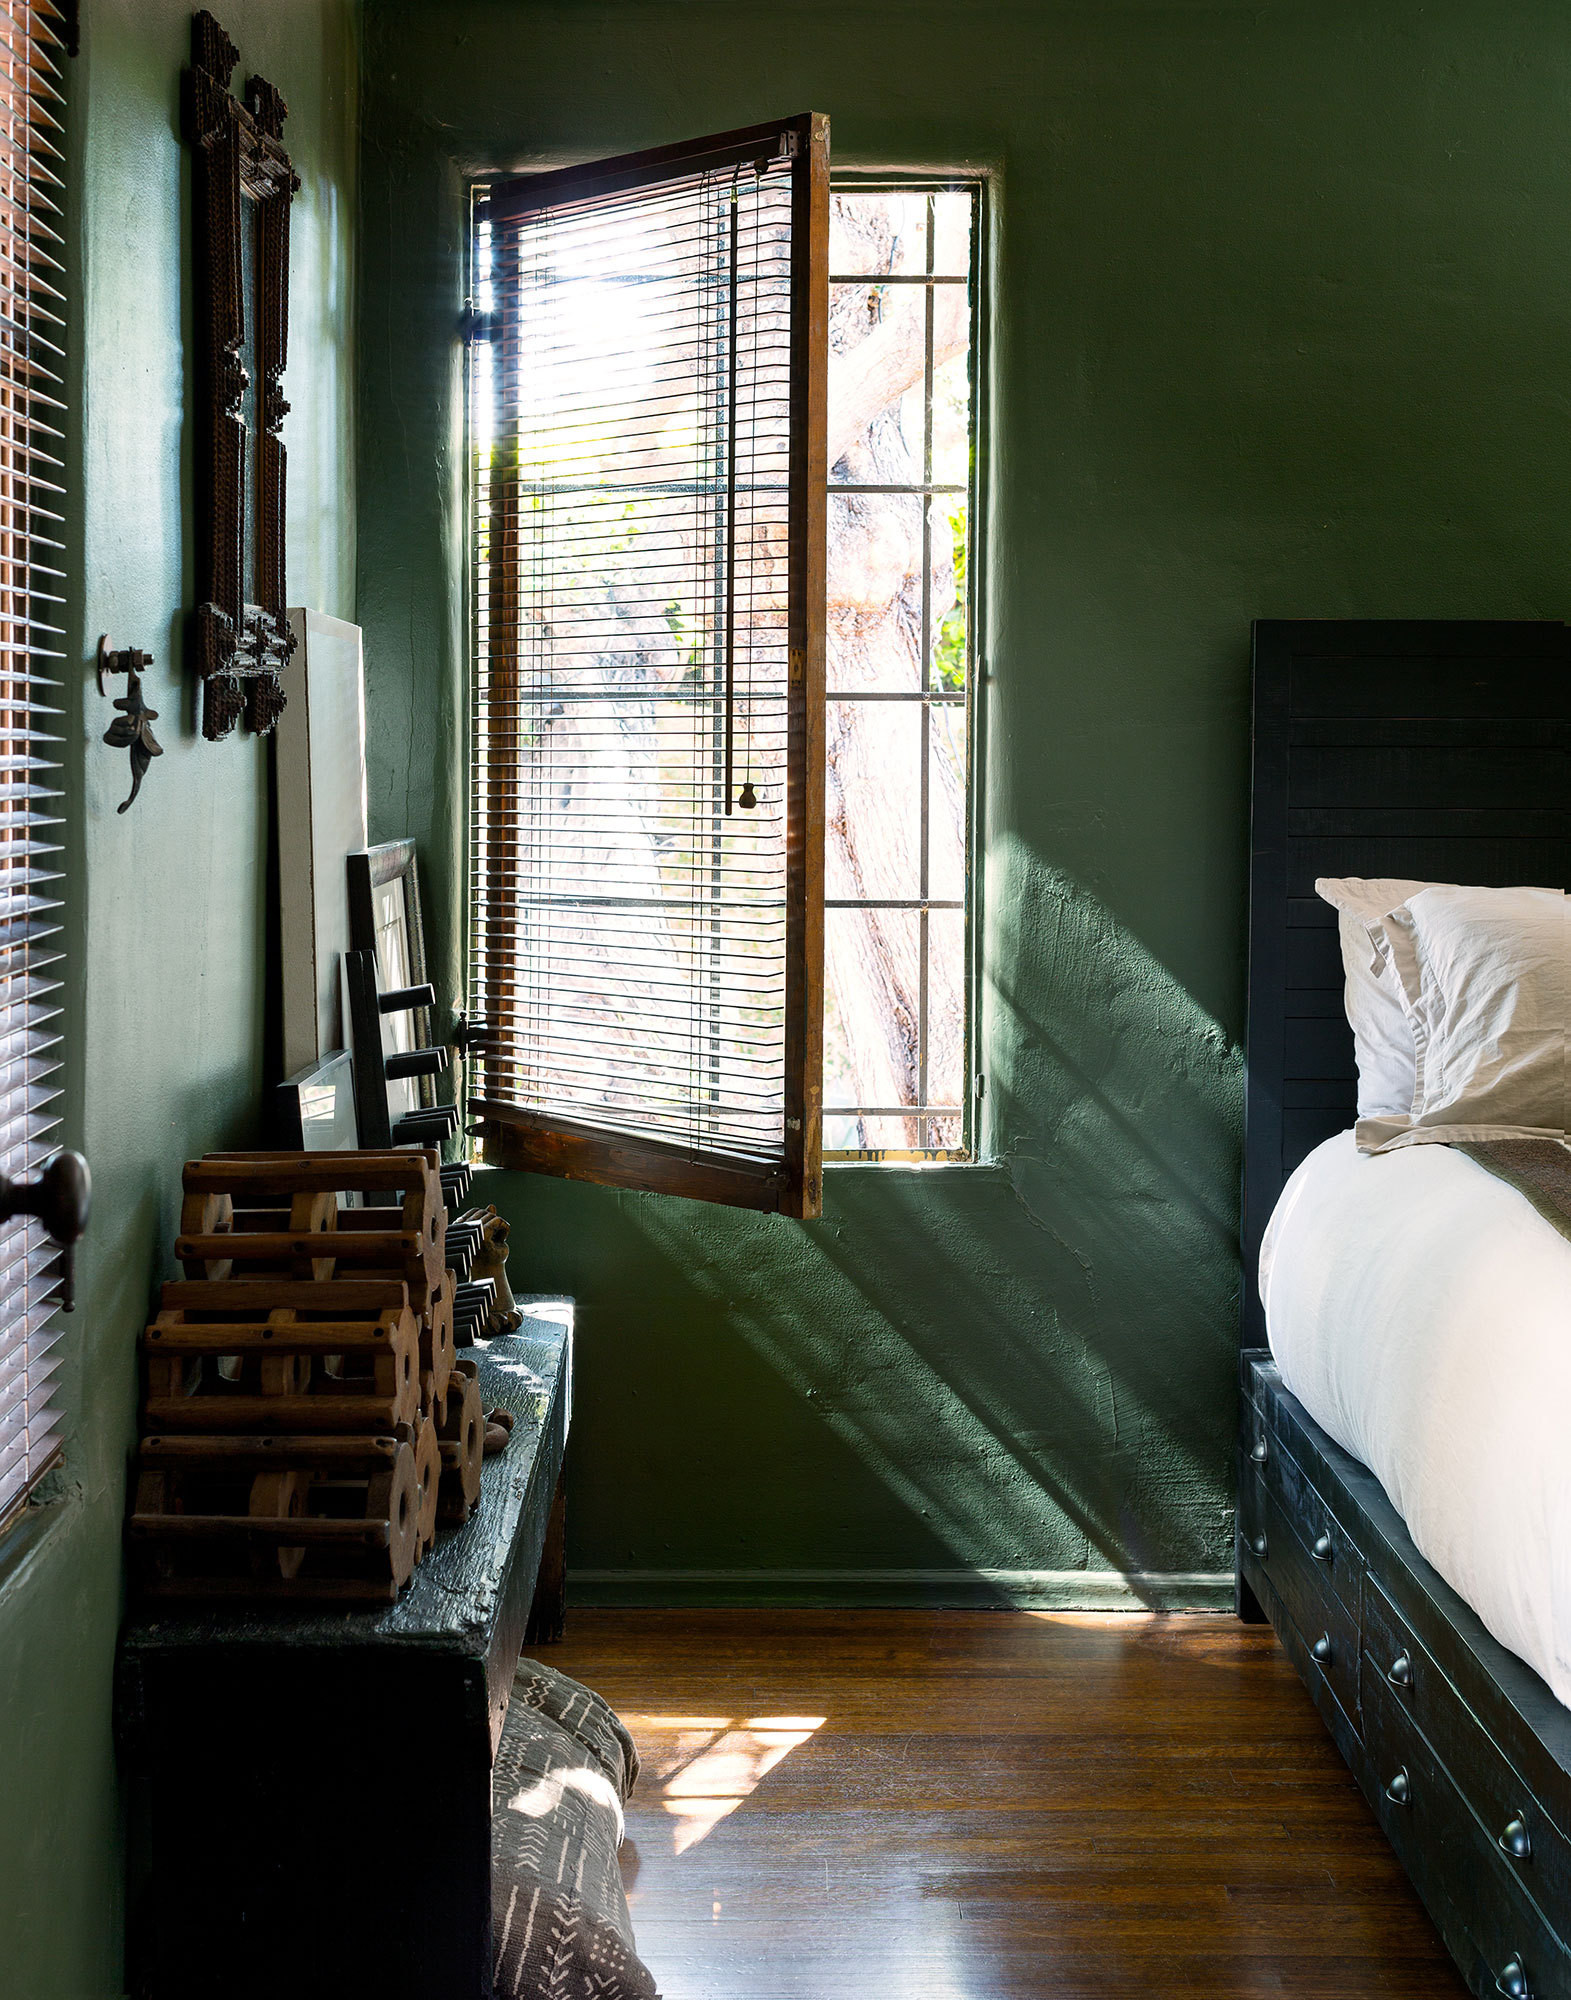 The master bedroom is painted in a soft forest green.